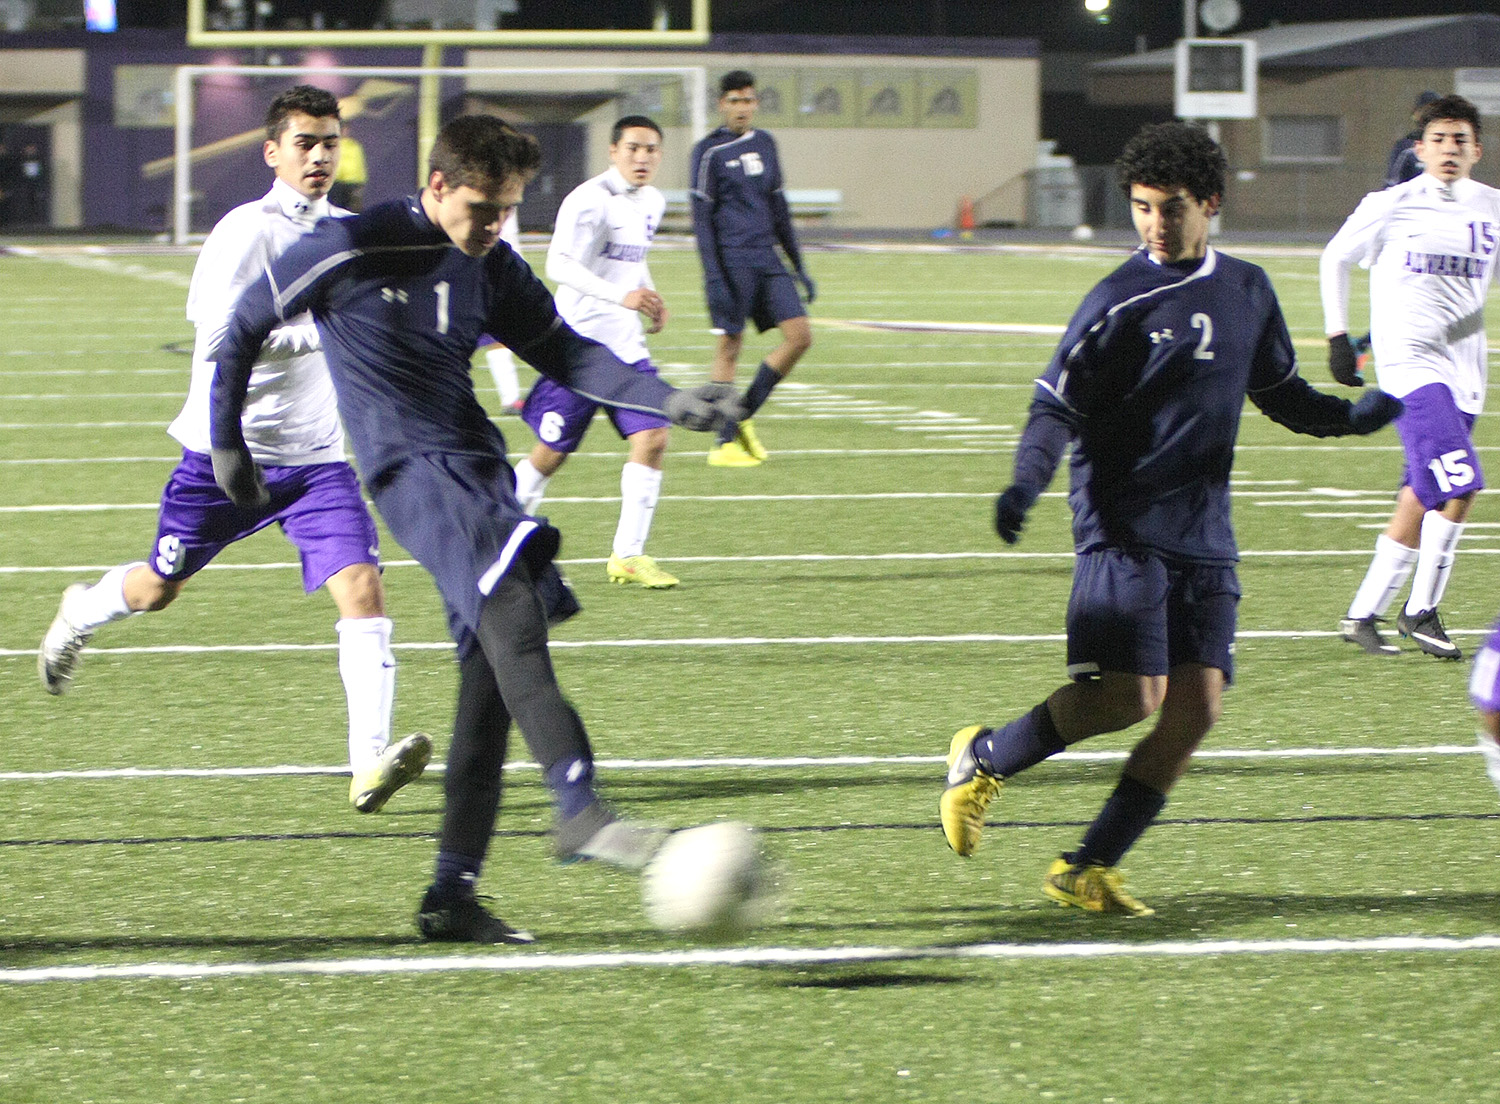 This was the game winner fired by sophomore striker Aaron Veloz in the 79th minute of Stephenville's regular season opener at Alvarado Tuesday night. || Photo by BRAD KEITH